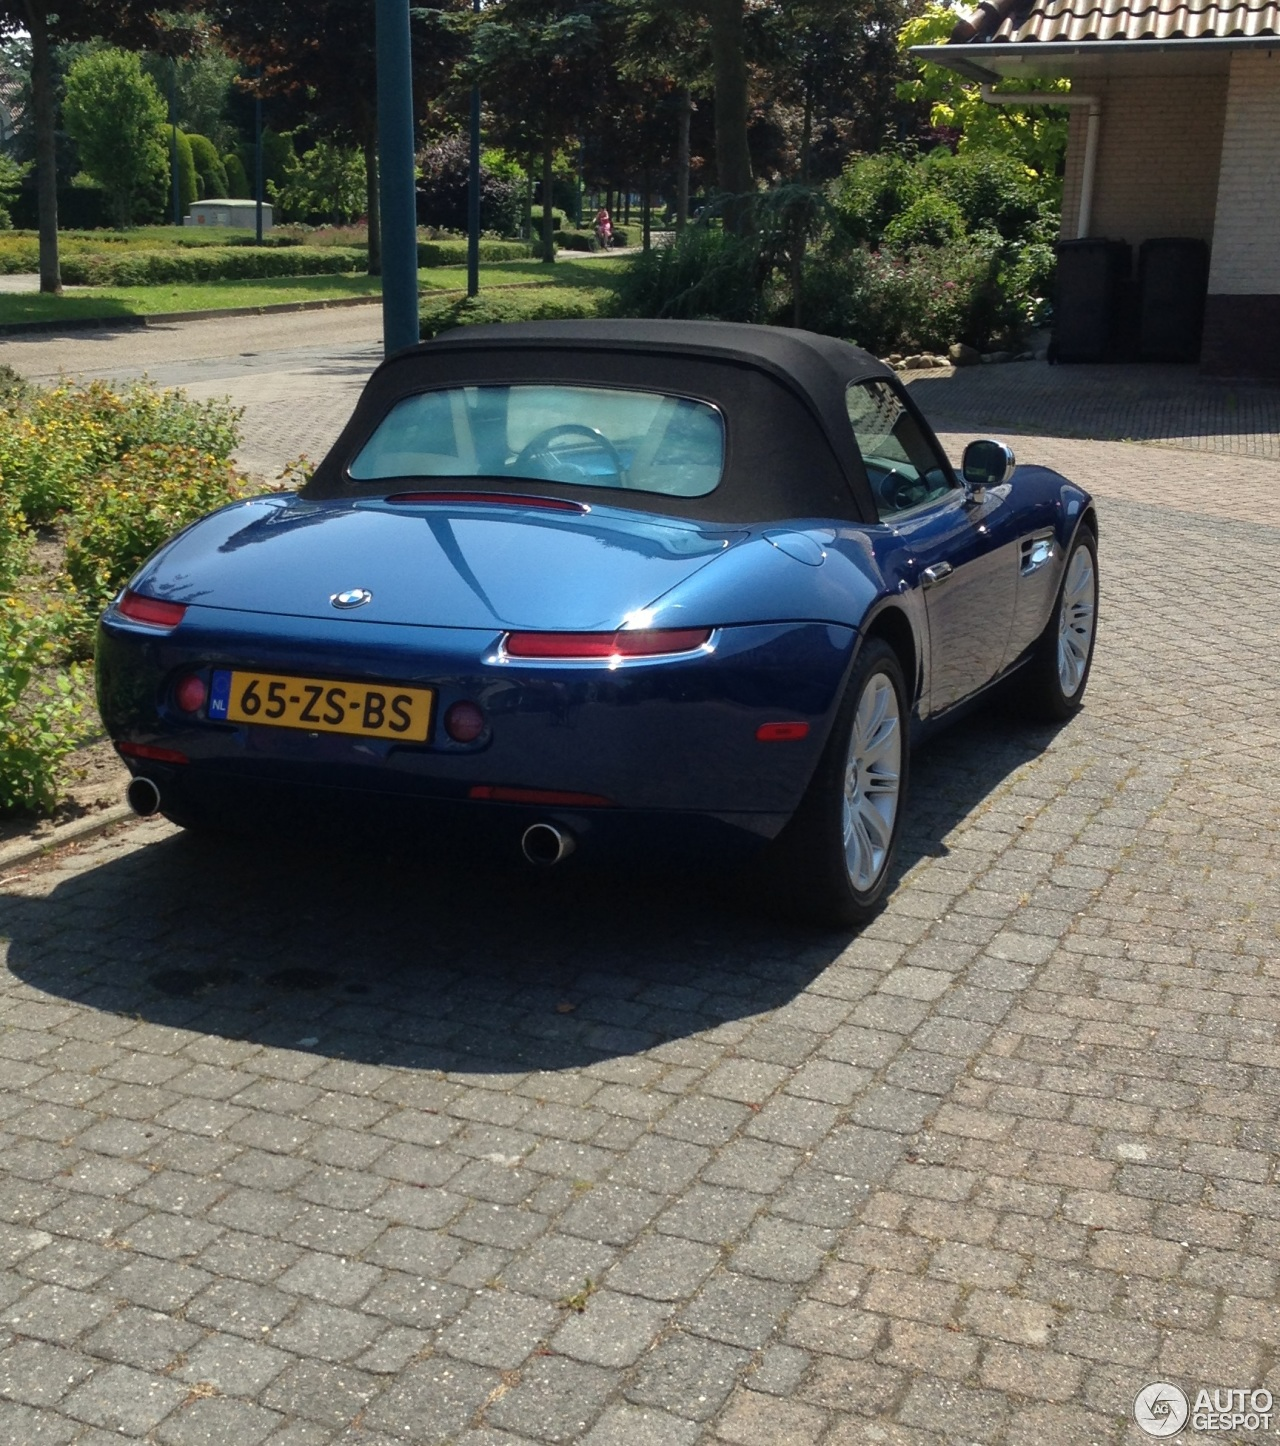 Bmw Z1 Door: 11 July 2013